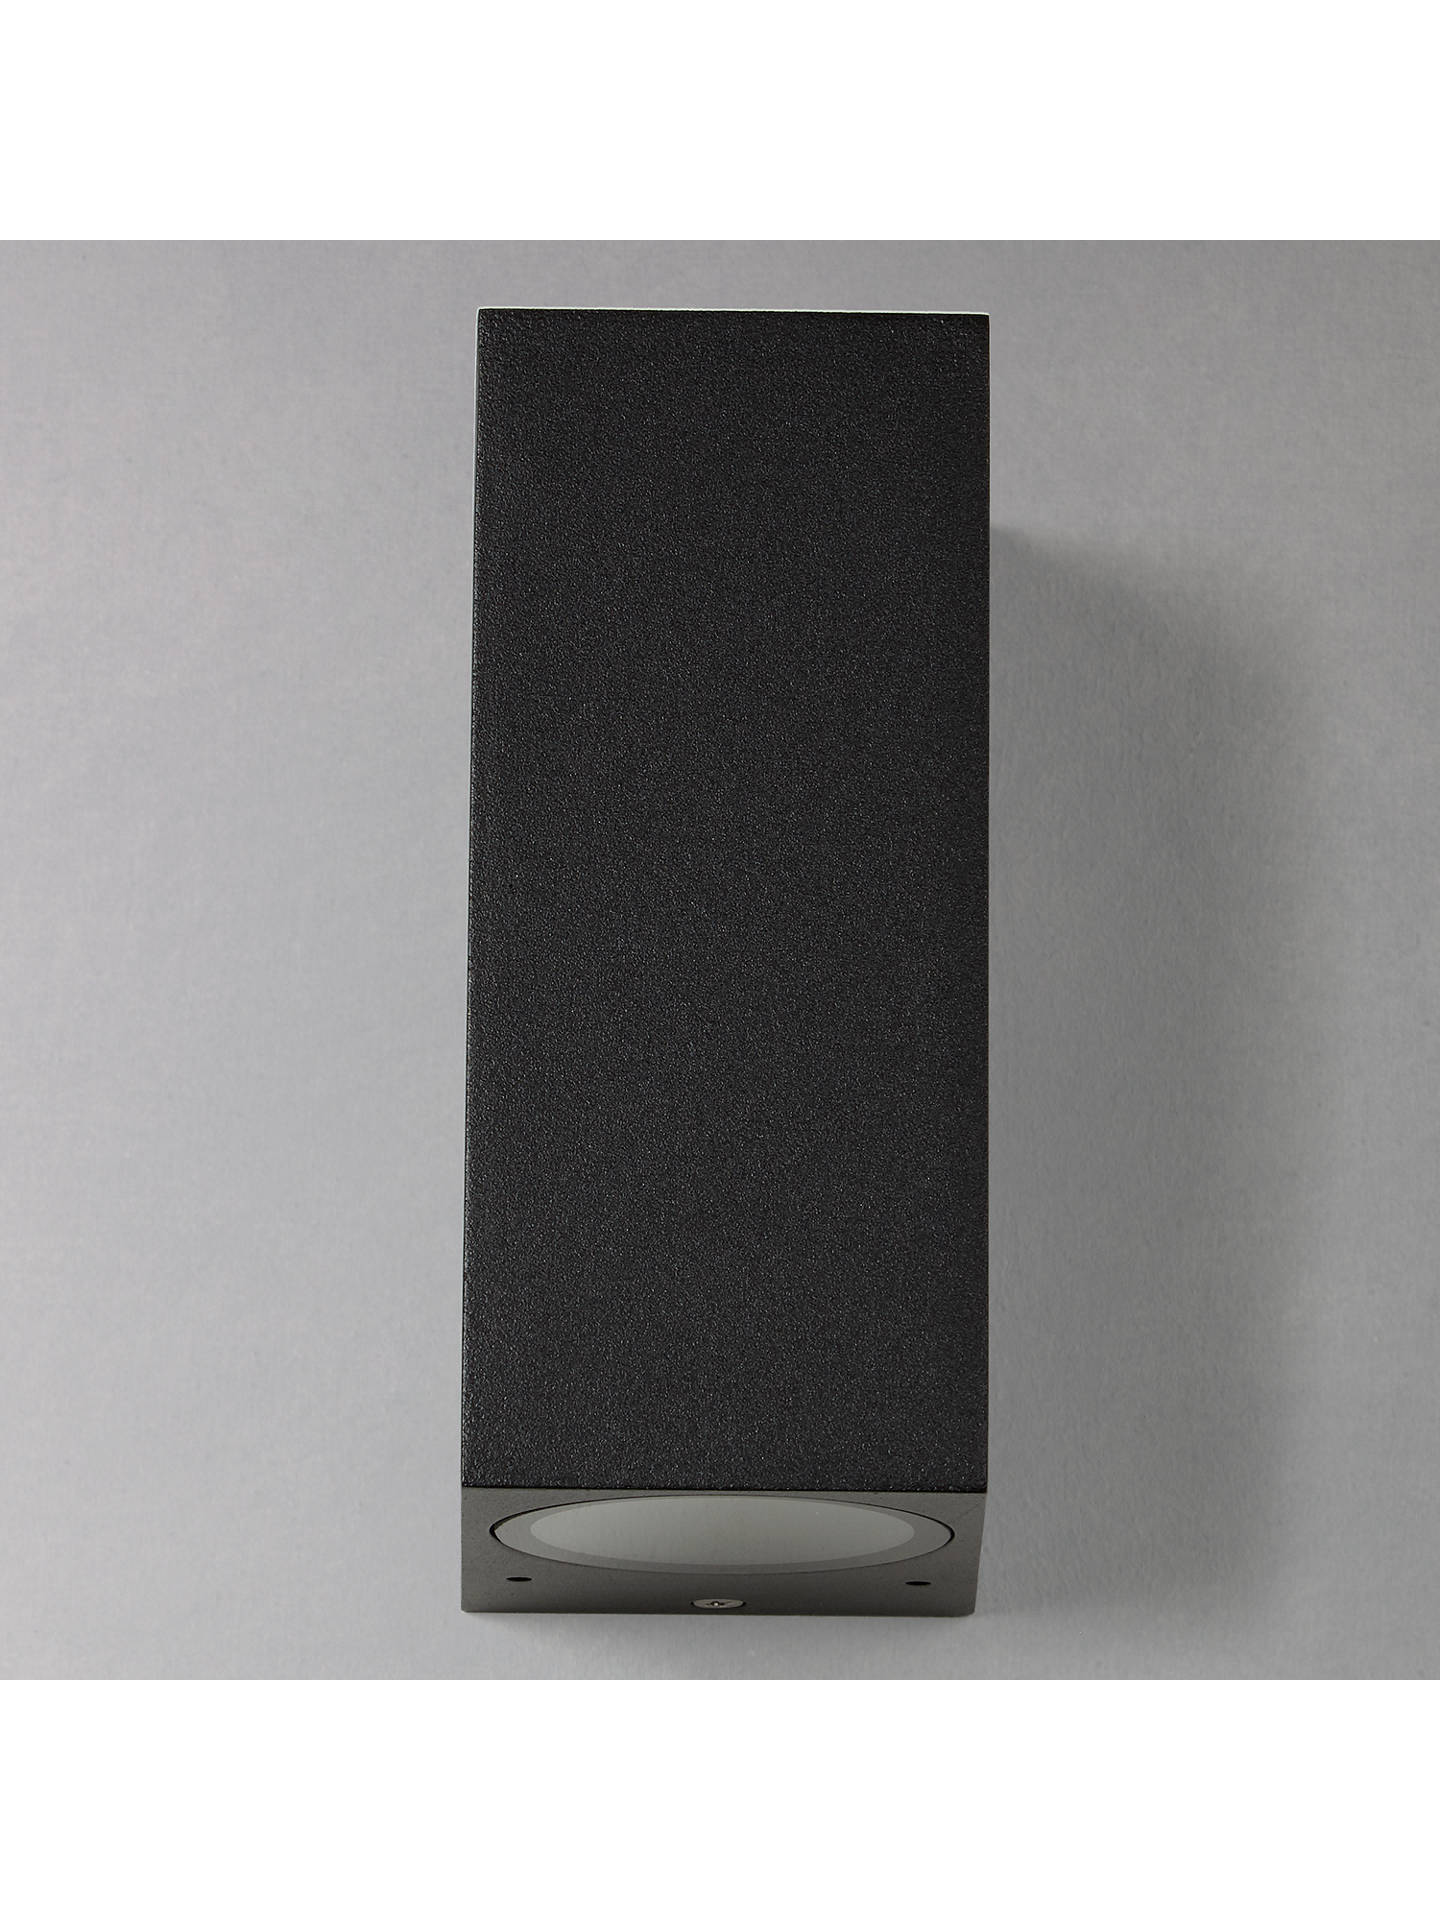 BuyAstro Chios 150 Outdoor Wall Light, Black Online at johnlewis.com